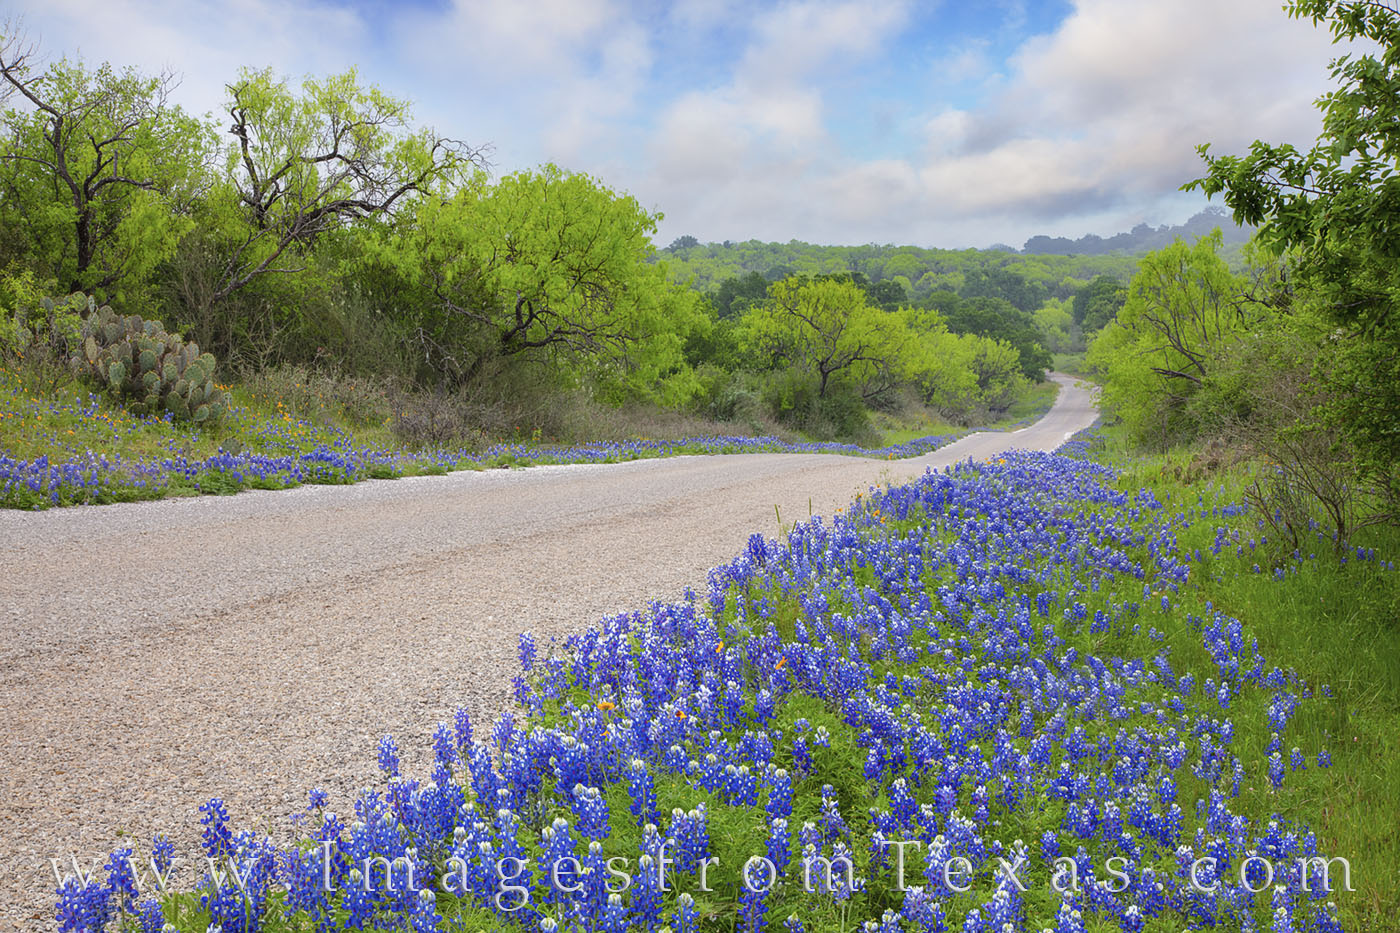 bluebonnets, best bluebonnet drives, bluebonnet roads, texas hill country, bluebonnet roads, backroads, exploring, green, escape, photo